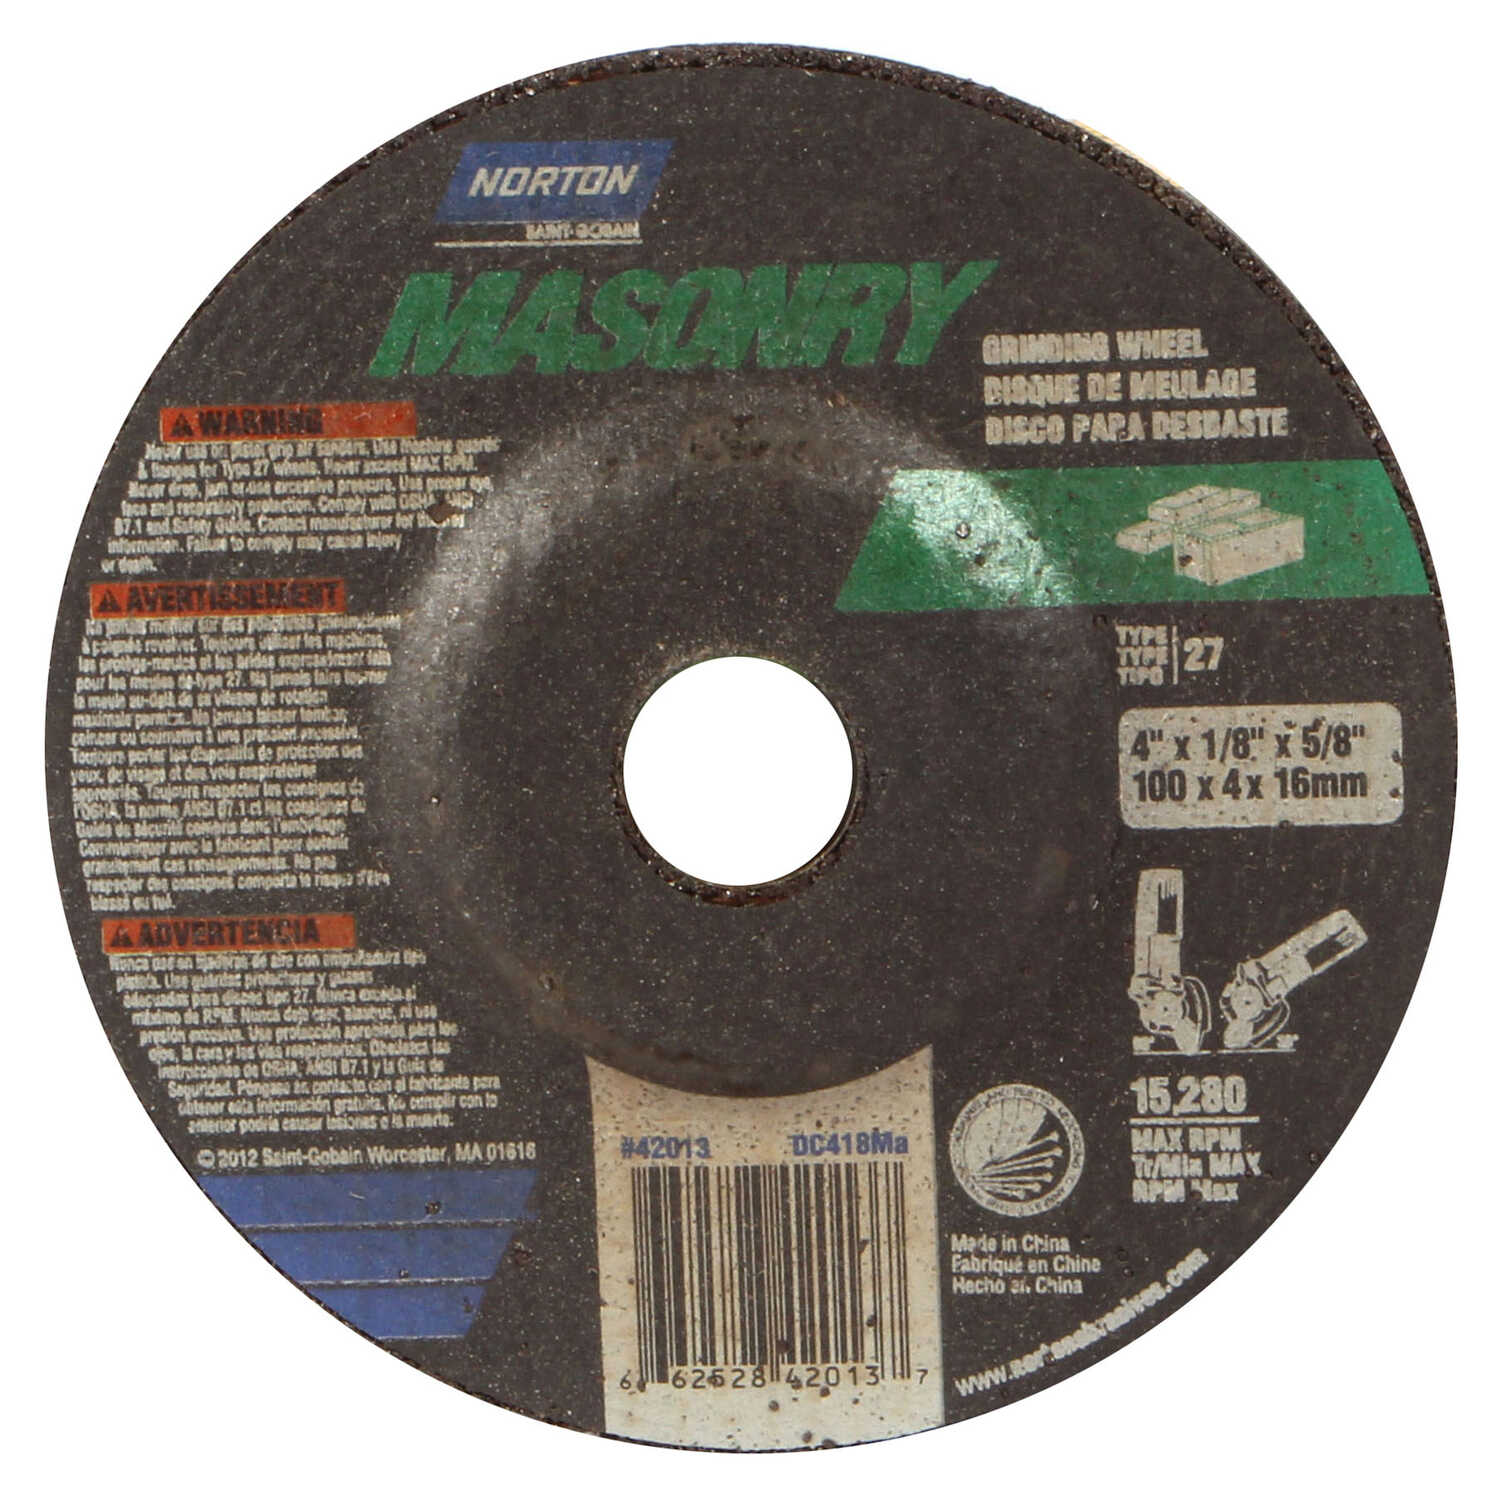 Norton  Masonry  4 in. Dia. x 1/8 in. thick  x 5/8 in.   Silicon Carbide  Grinding Wheel  15280 rpm